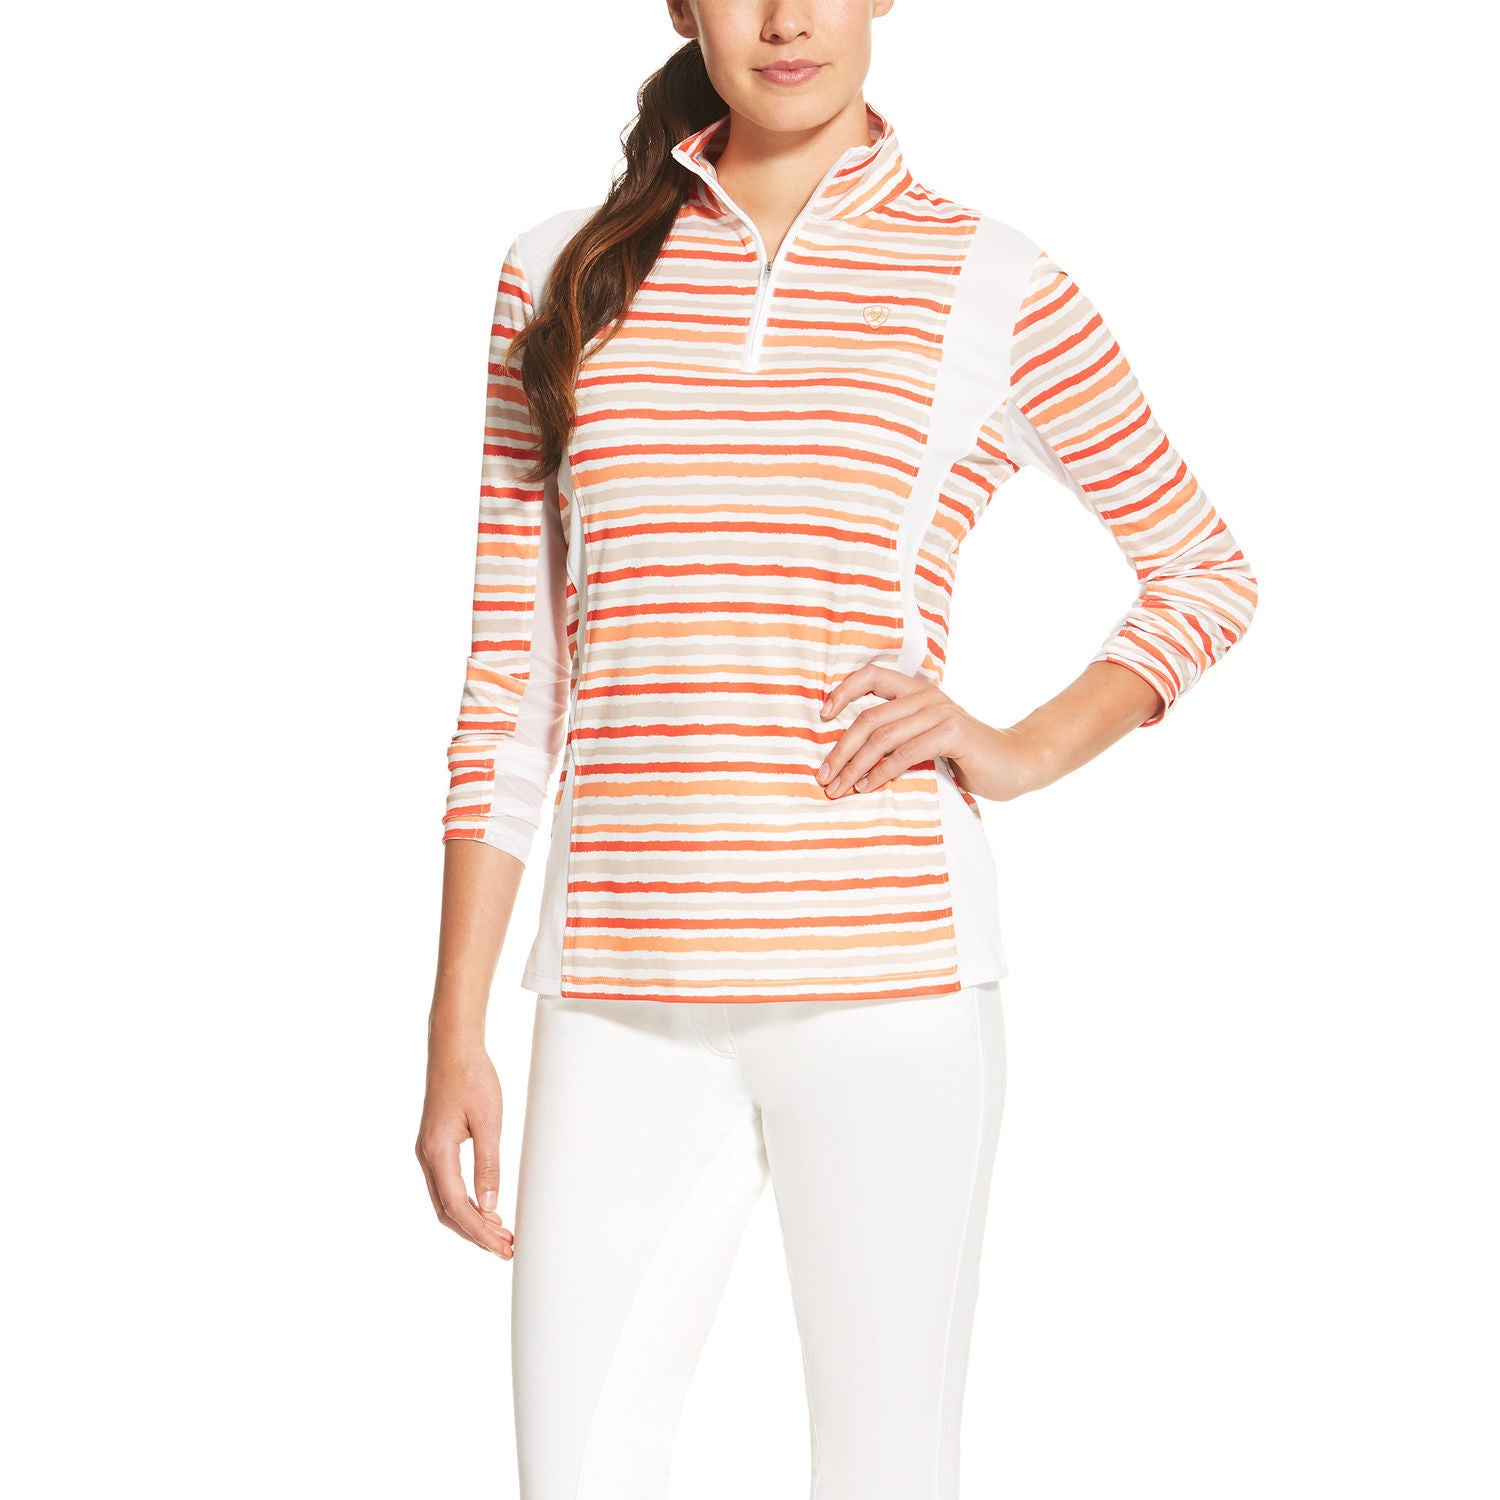 Ariat Sunstopper 1/4 Zip Top - SALE - North Shore Saddlery